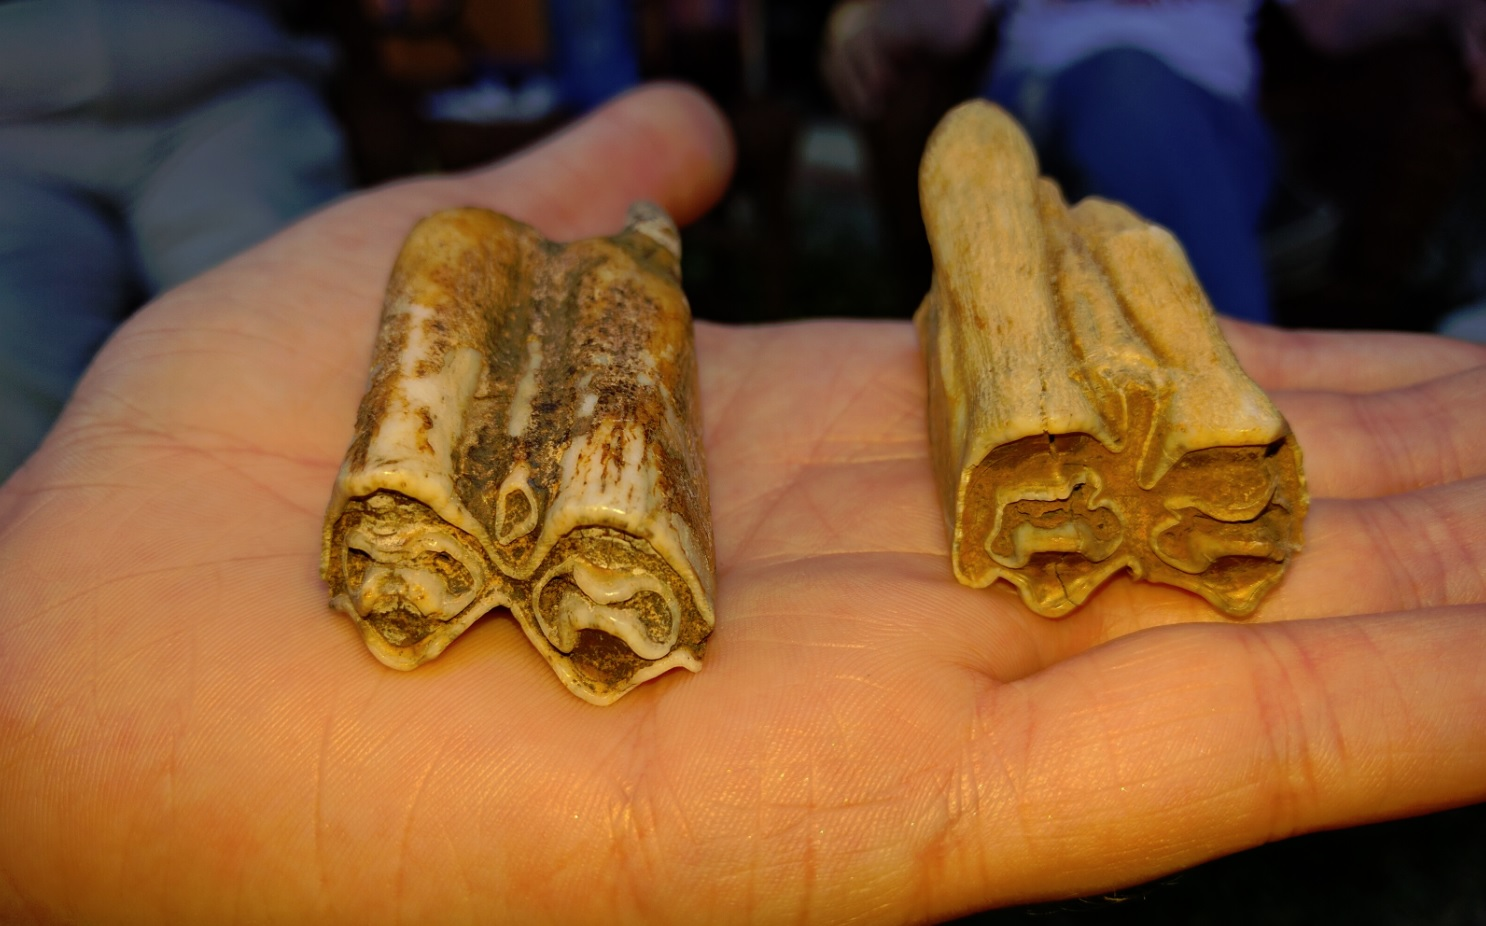 two fossilized teeth in the palm of a person's hand